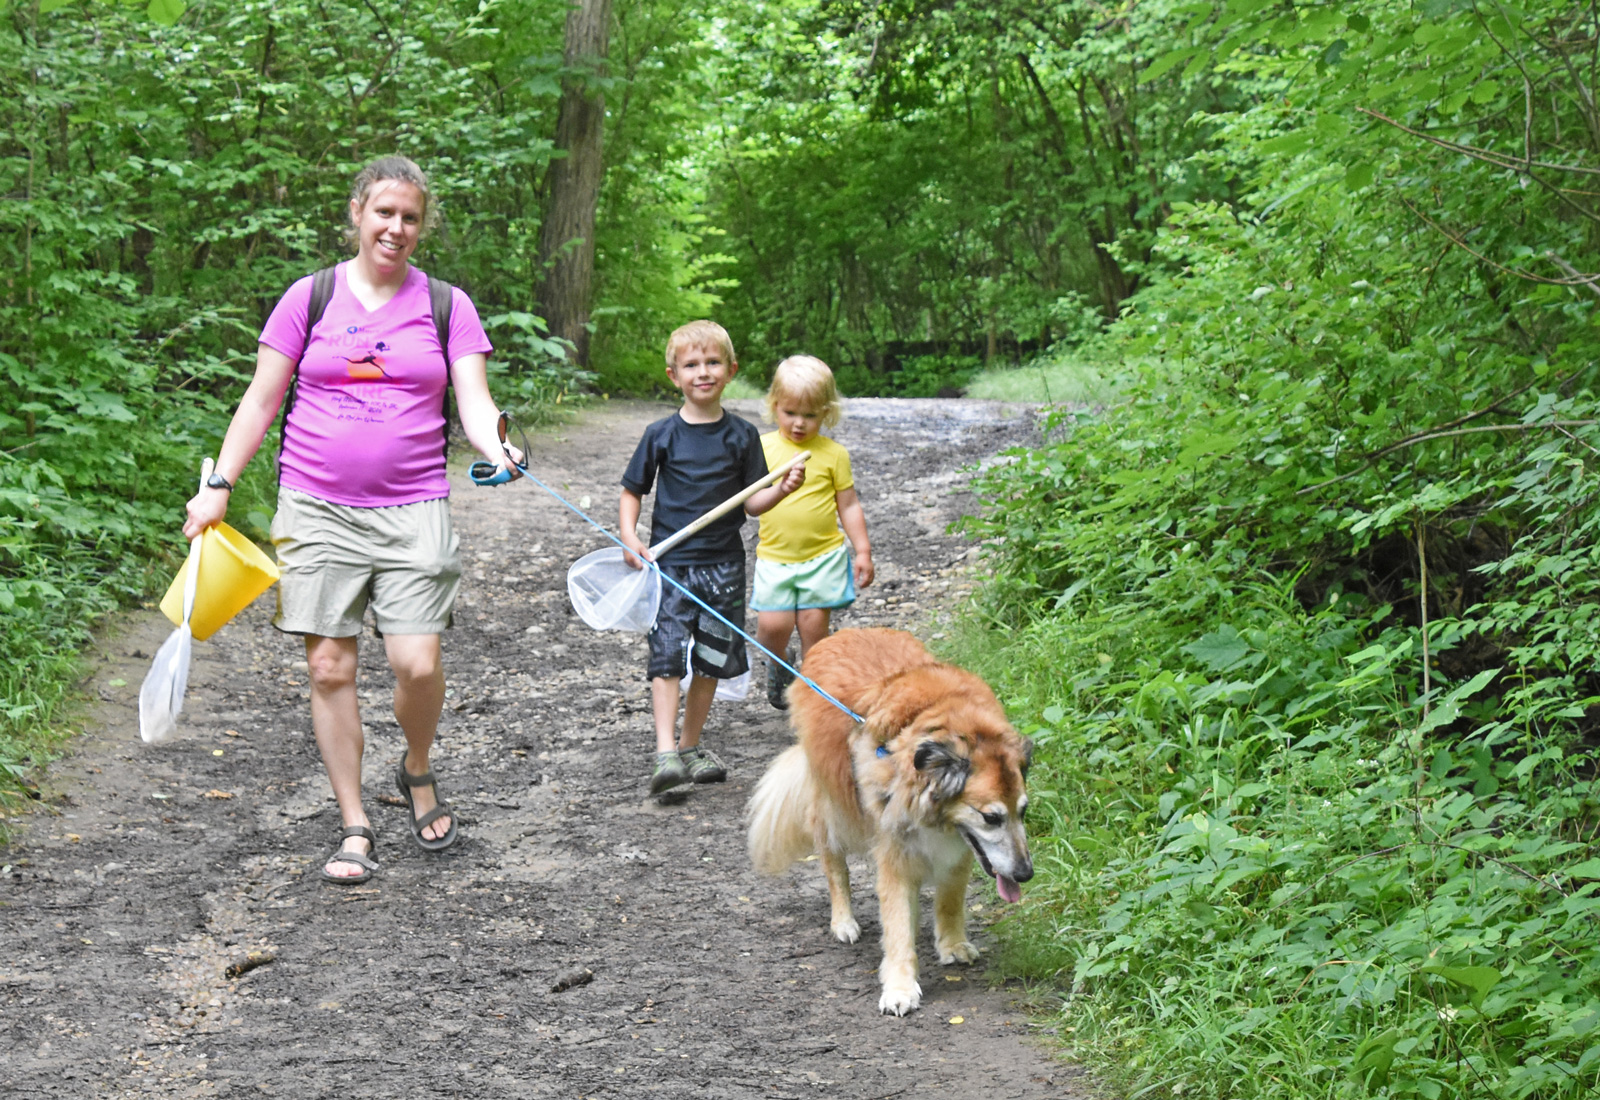 Mom, two kids and best furry friend on the Coyote Run Trail at Highbanks, heading to a creeking spot.